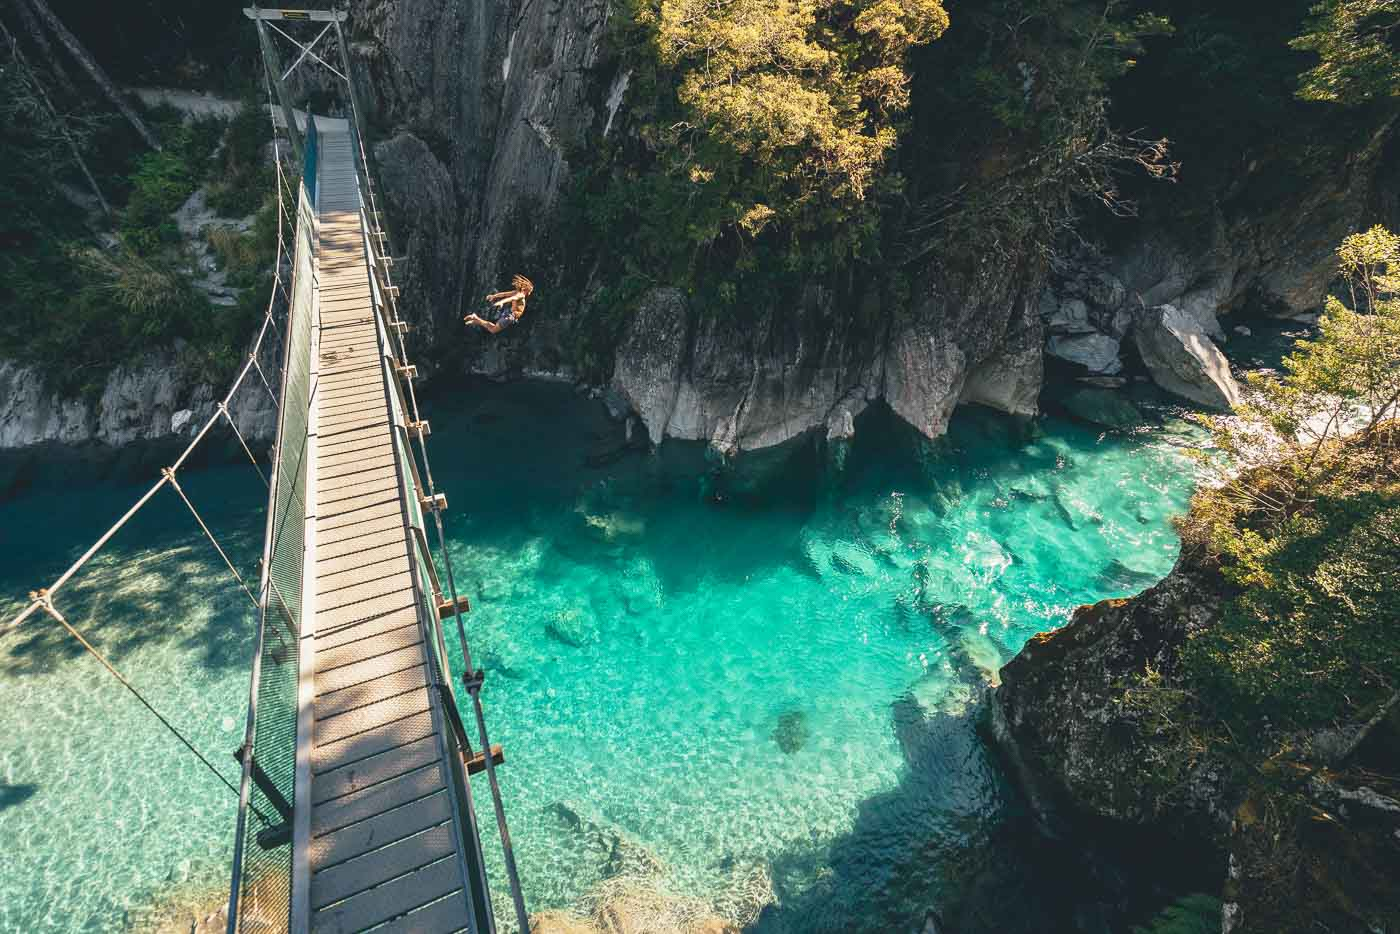 Alexander Knorr jumping off the Blue pool bridge in New Zealand on the Will and Bear Road trip